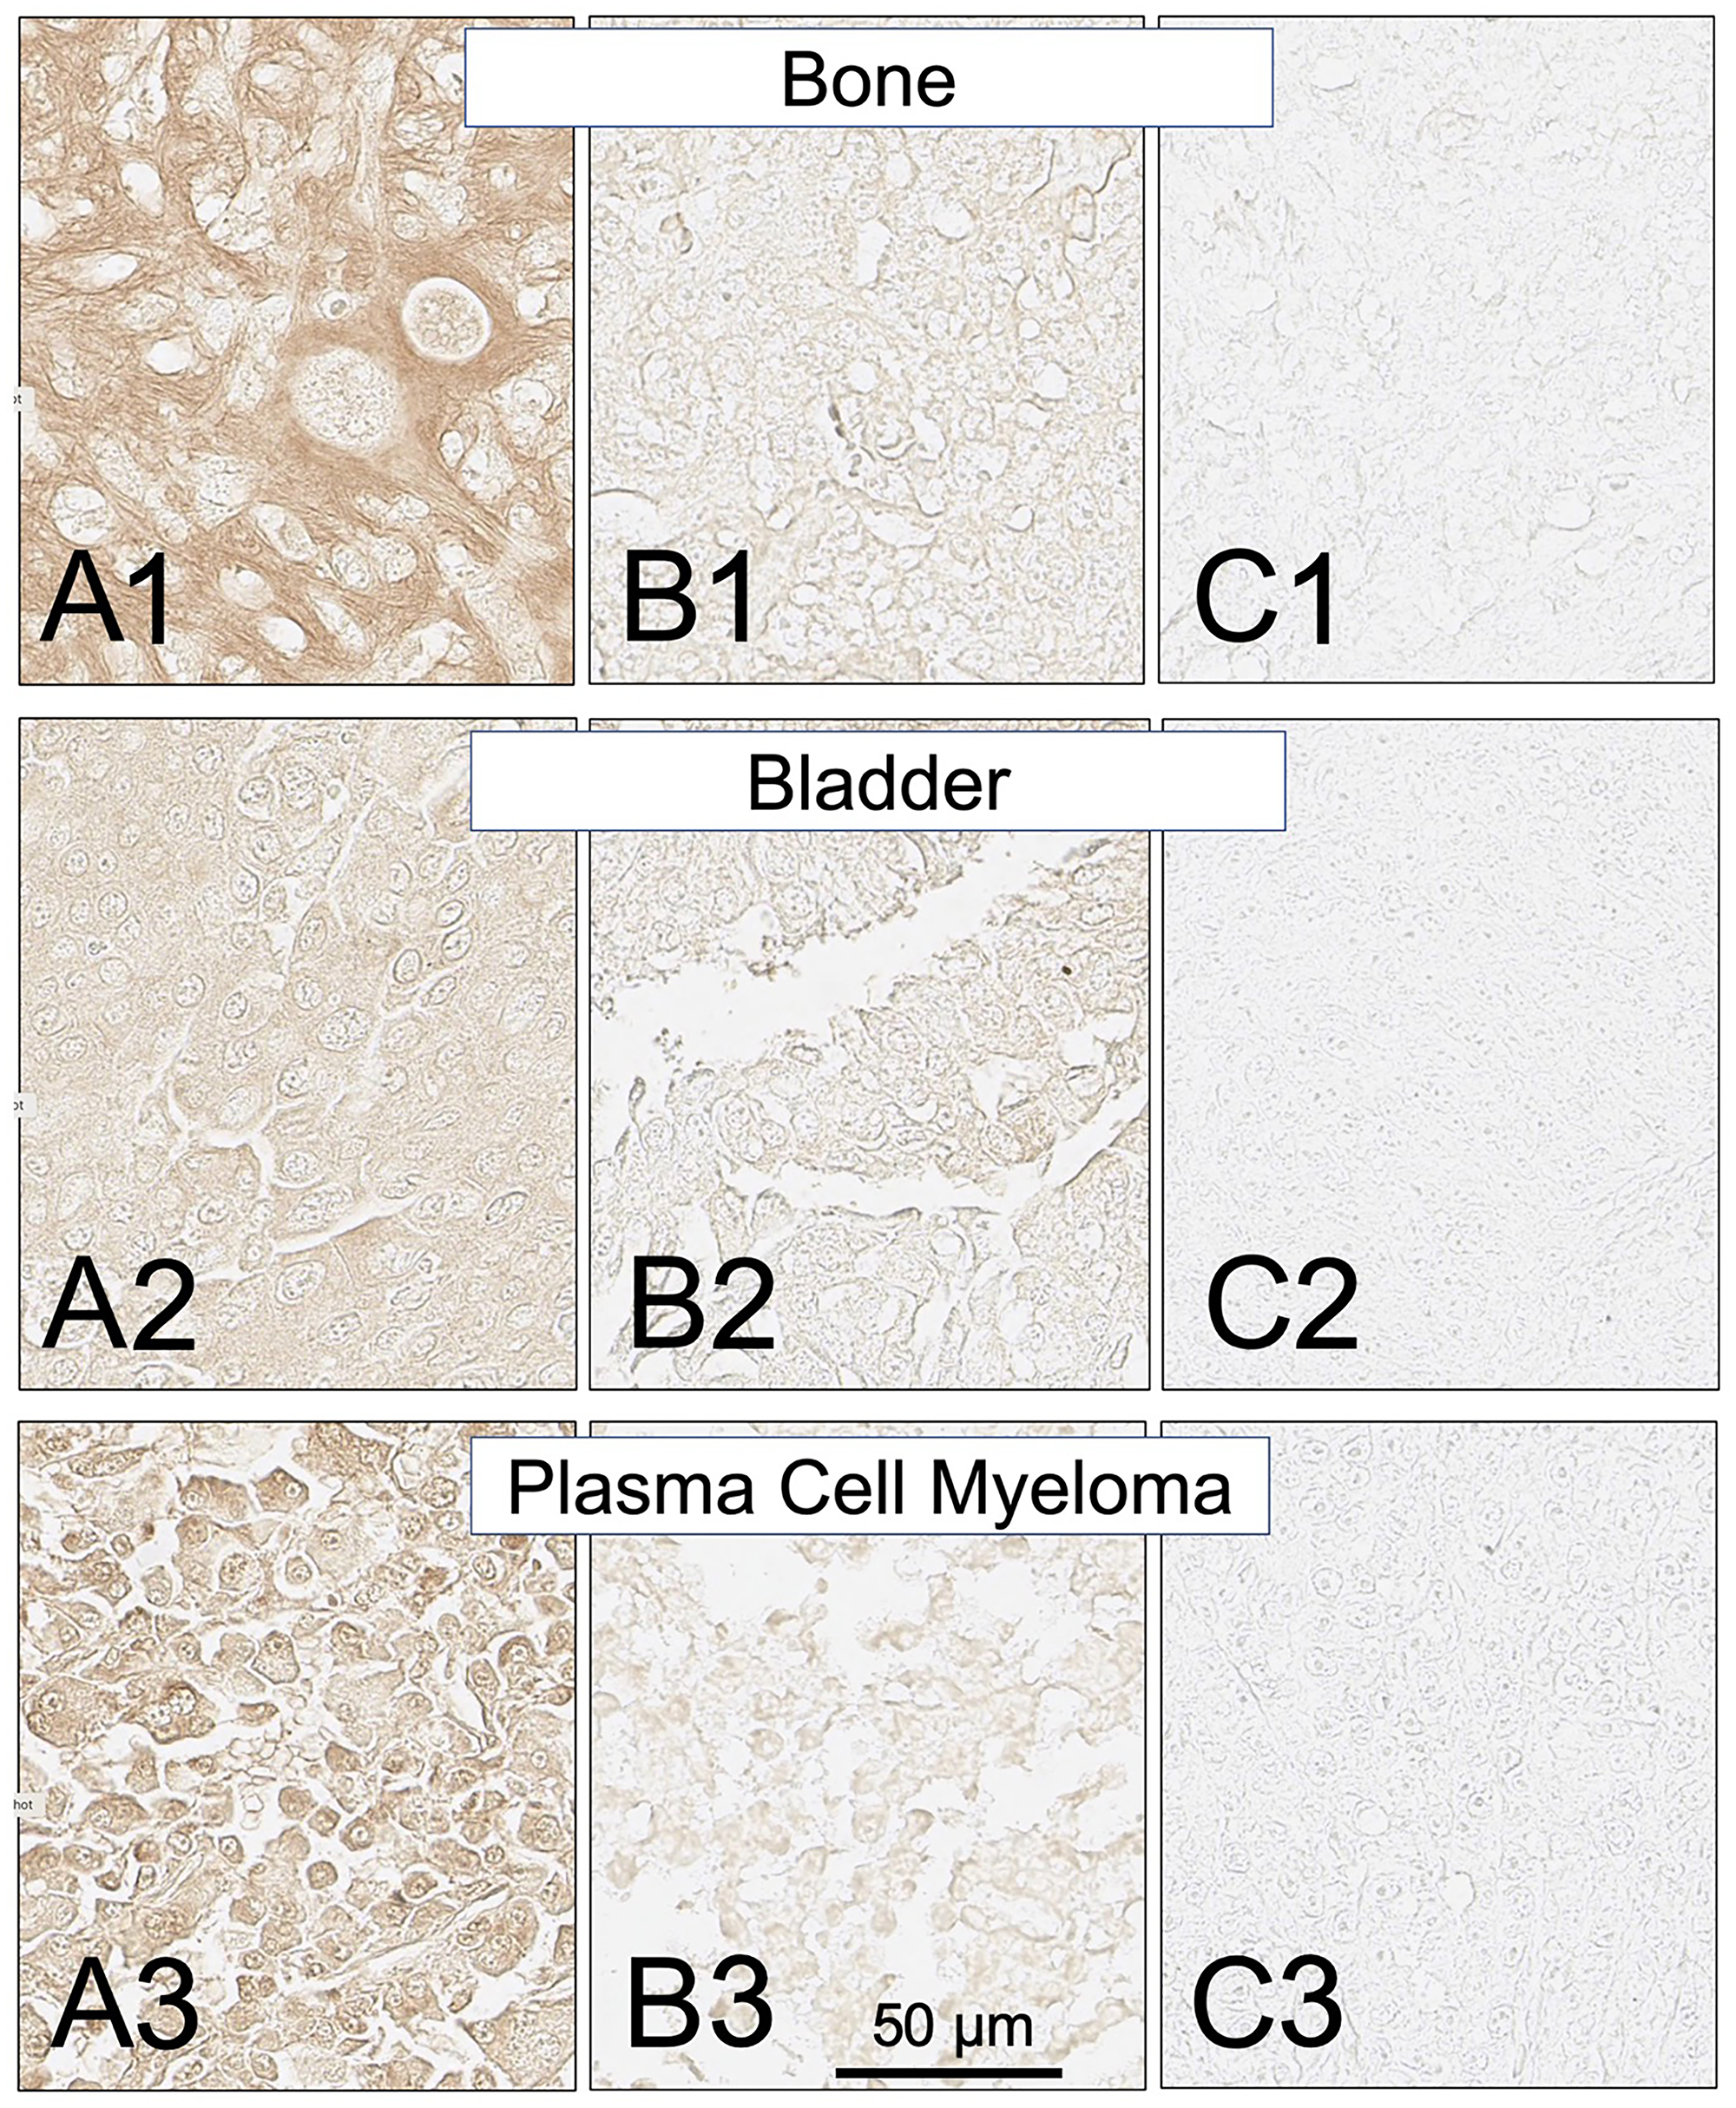 SH7129 stained sections of representative bone, bladder and plasma cell myeloma cancers expressing HLA-DRs targeted by SH7139.